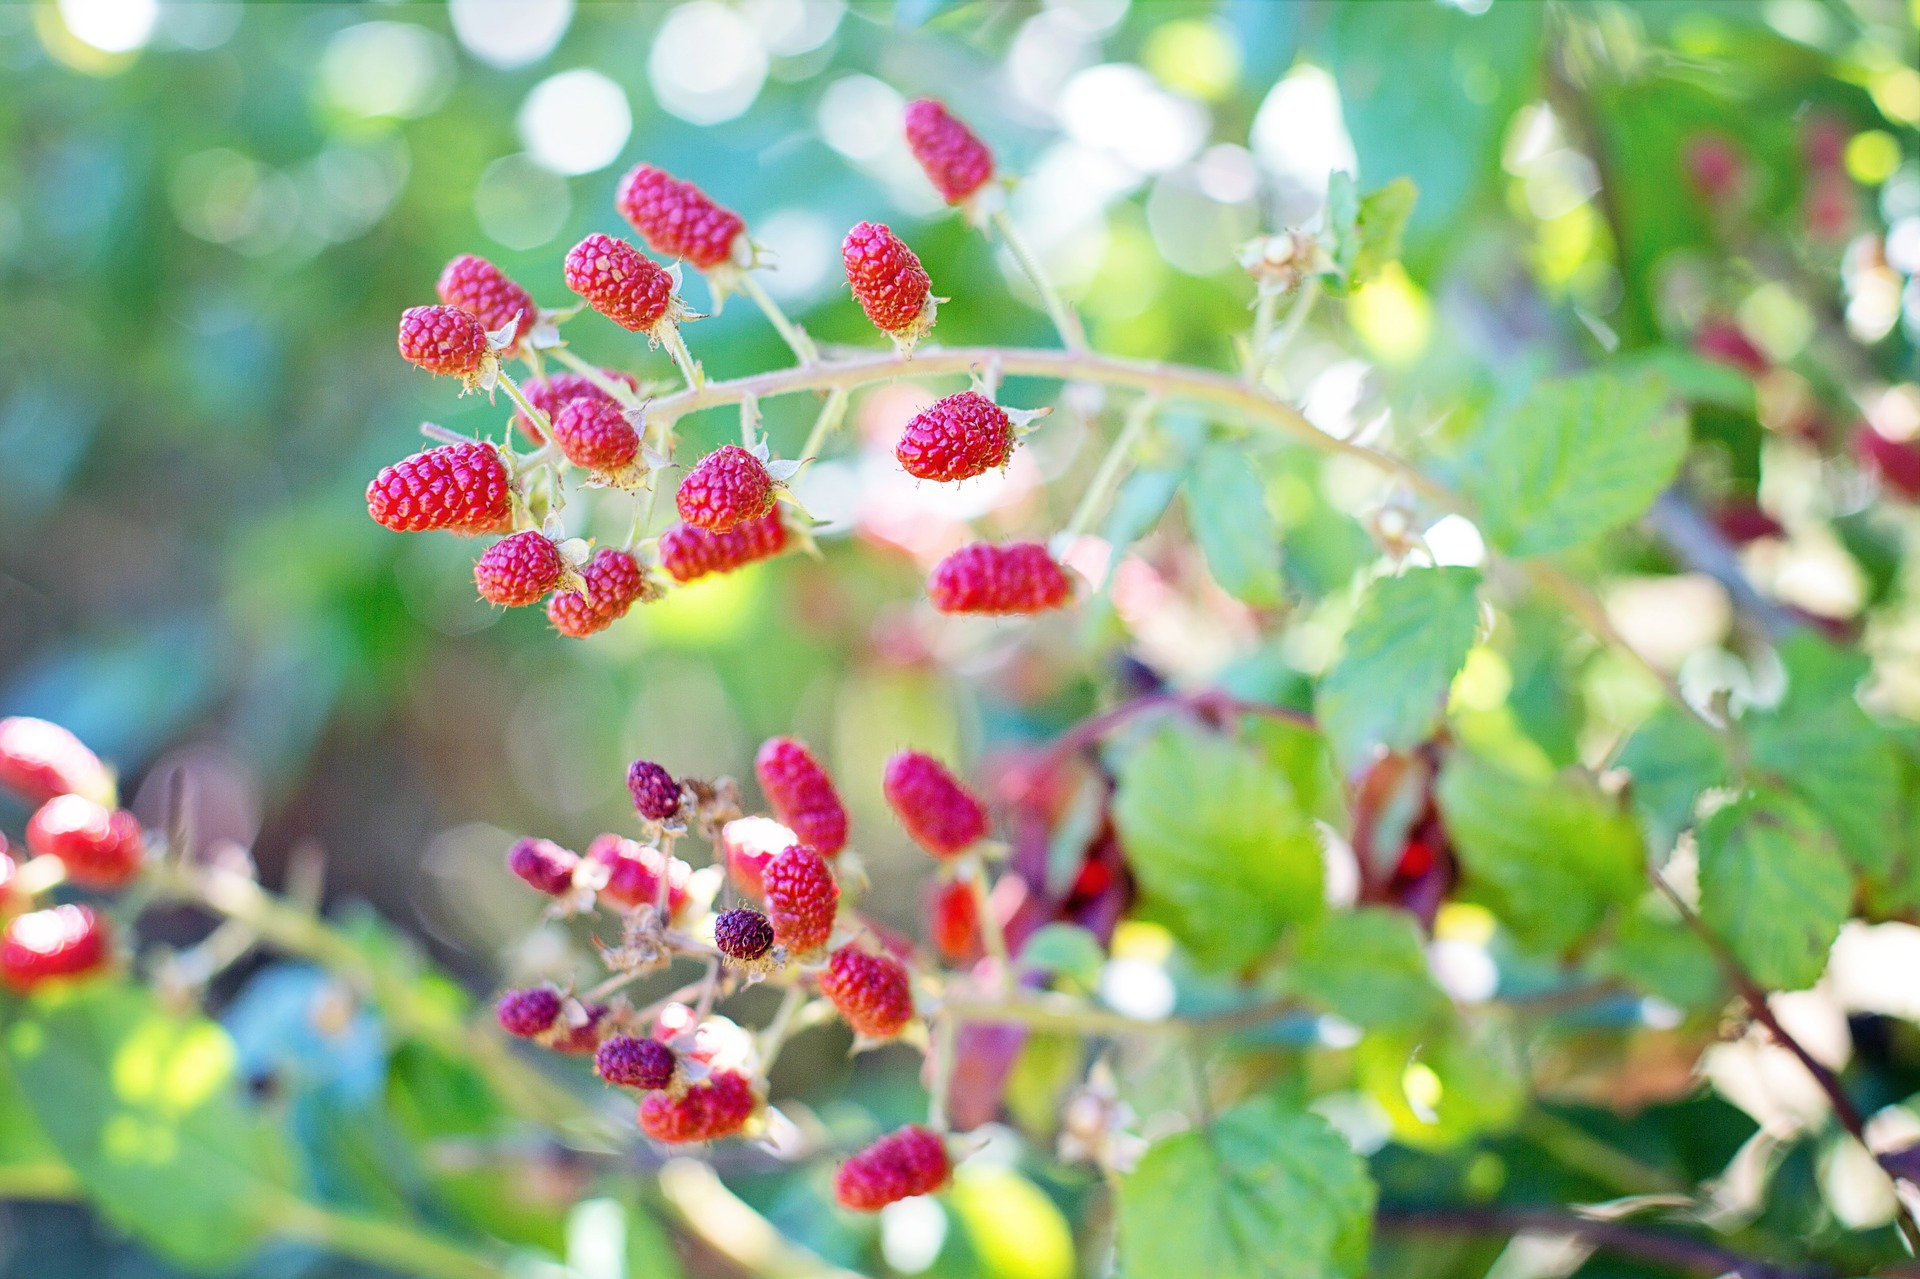 Tips and Advice for Growing Raspberries in Your Own Backyard